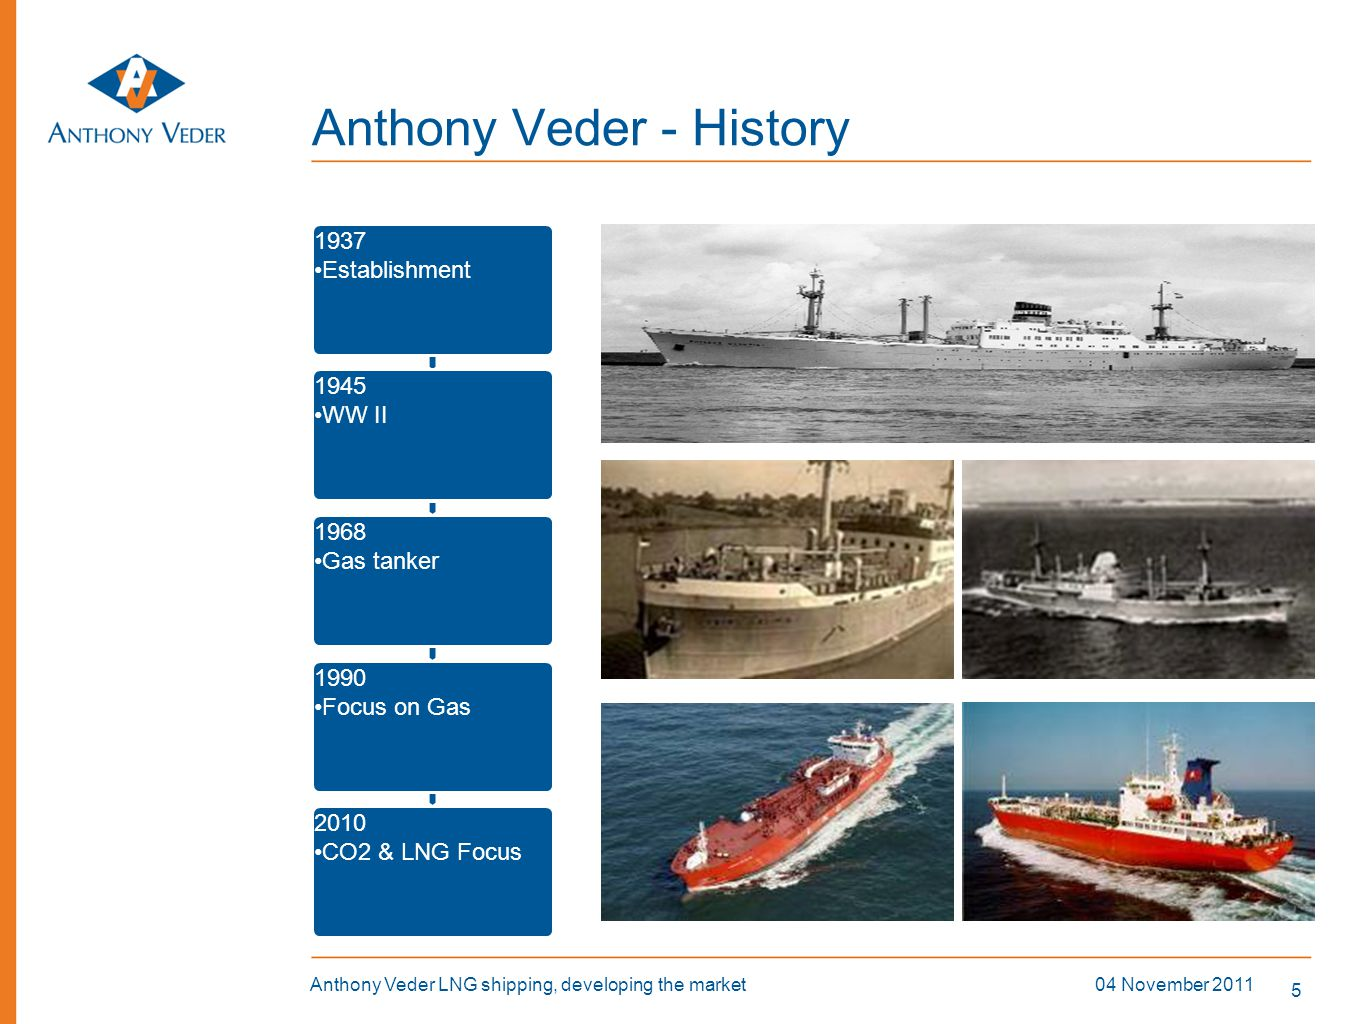 6 04 November 2011Anthony Veder LNG shipping, developing the market Integrated ship owner CharteringOperationsSHEQTechnicalCrewing Introduction FinanceBusiness DevelopmentHRNew building Supporting divisions Integrated departments